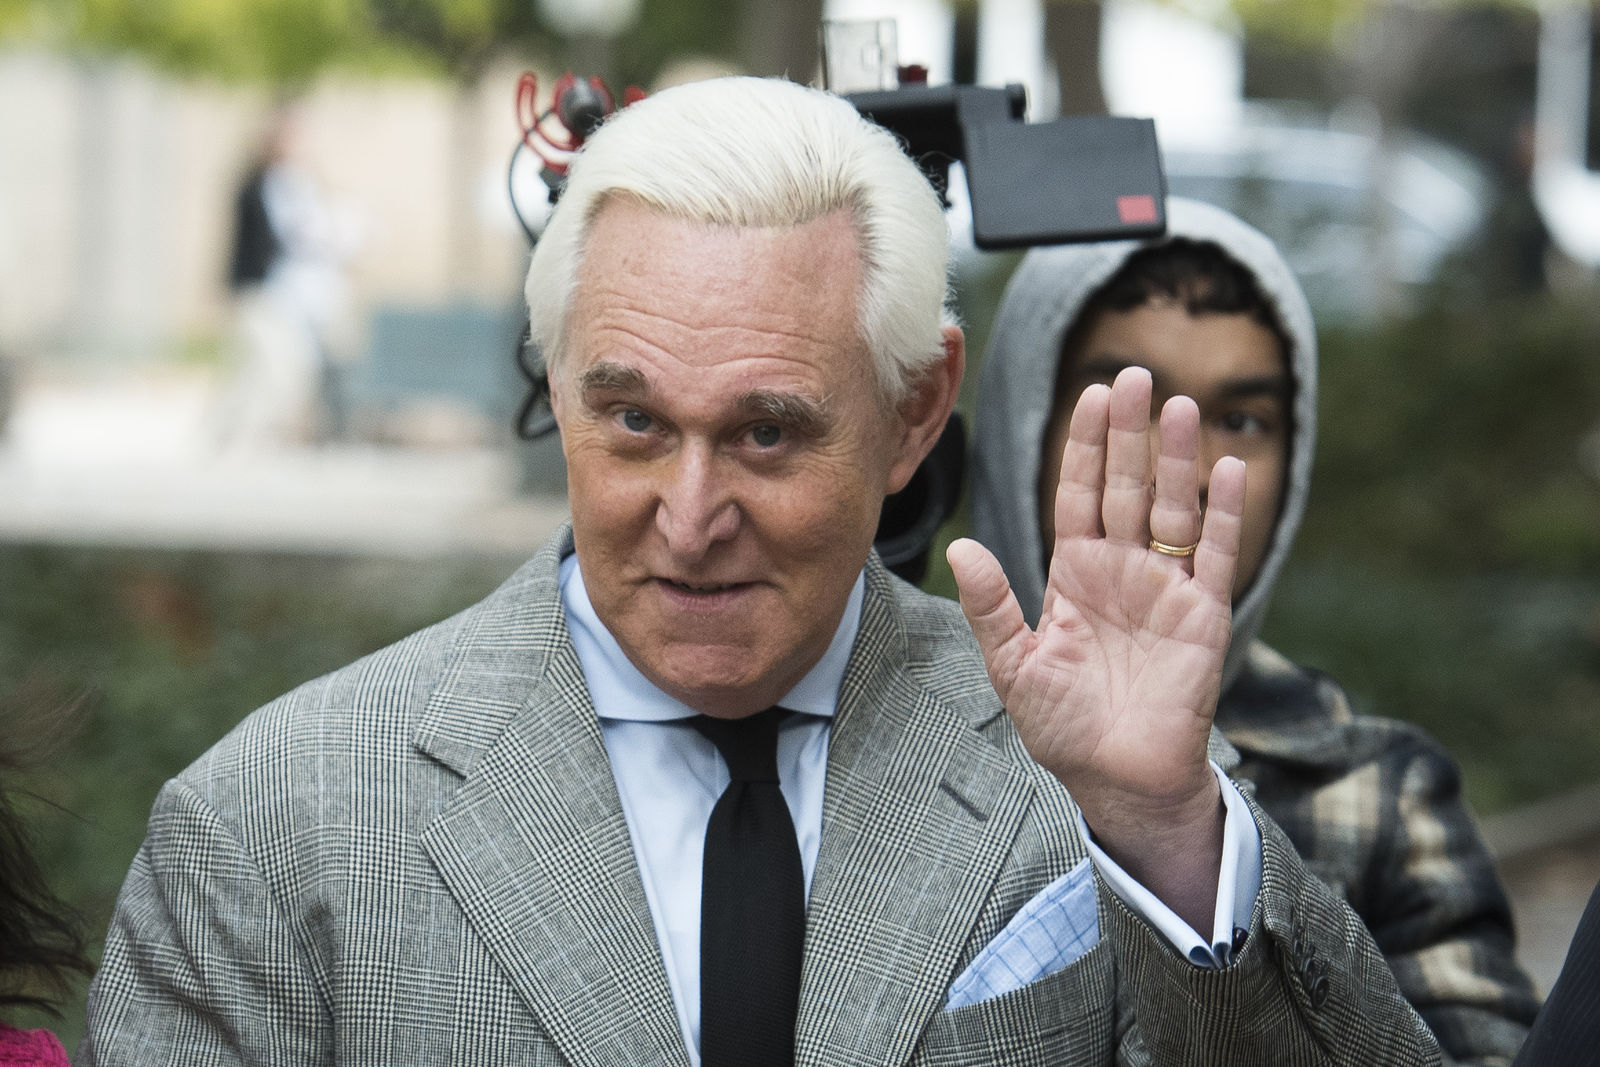 FILE - In this Nov. 7, 2019 file photo, Roger Stone arrives at Federal Court for his federal trial in Washington. (AP Photo/Cliff Owen)